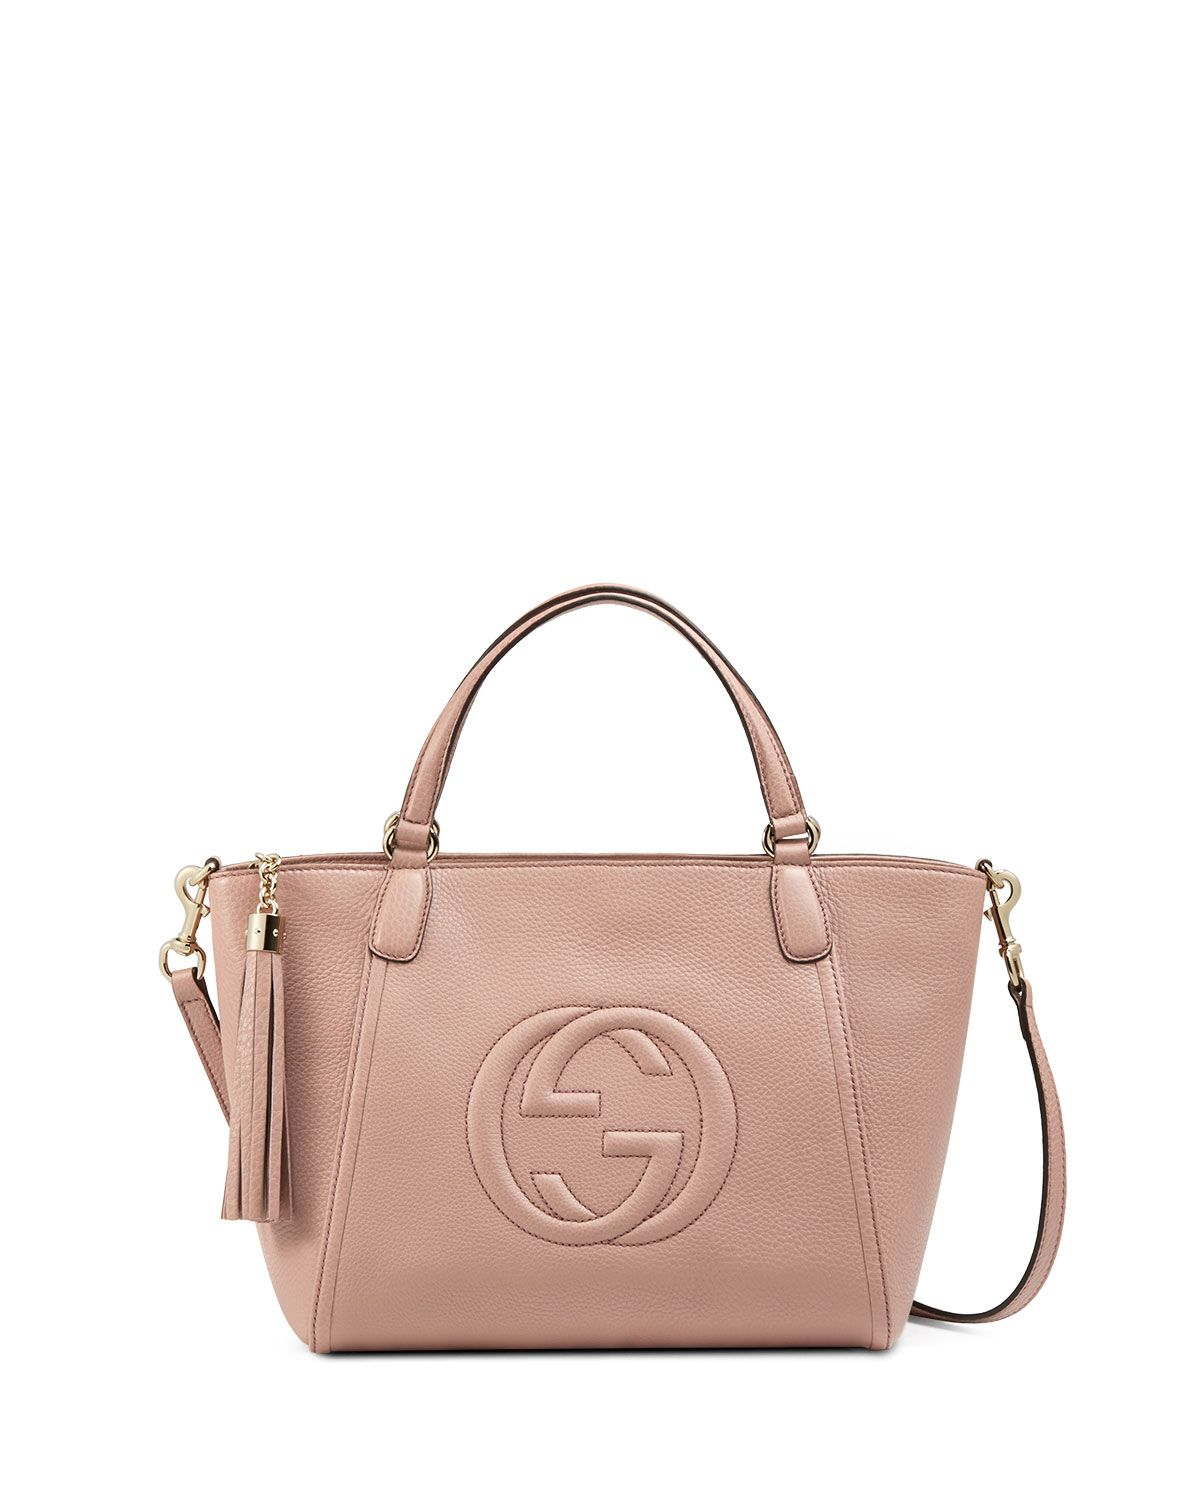 85b72073859d Gucci Soho Small Crossbody Tote, Dark Cipria Rose, Women's ...